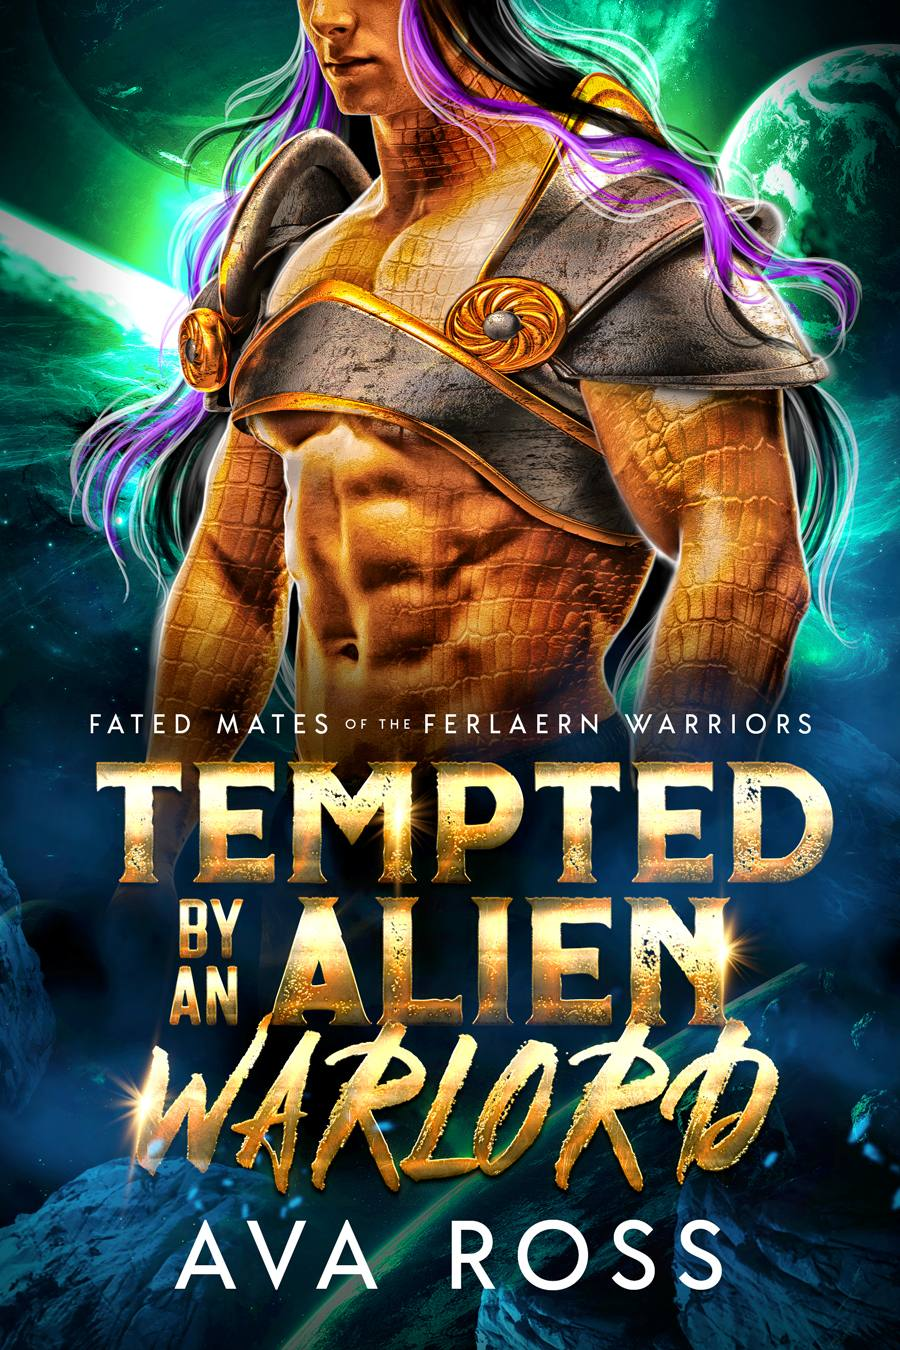 Tempted by the Alien Warlord